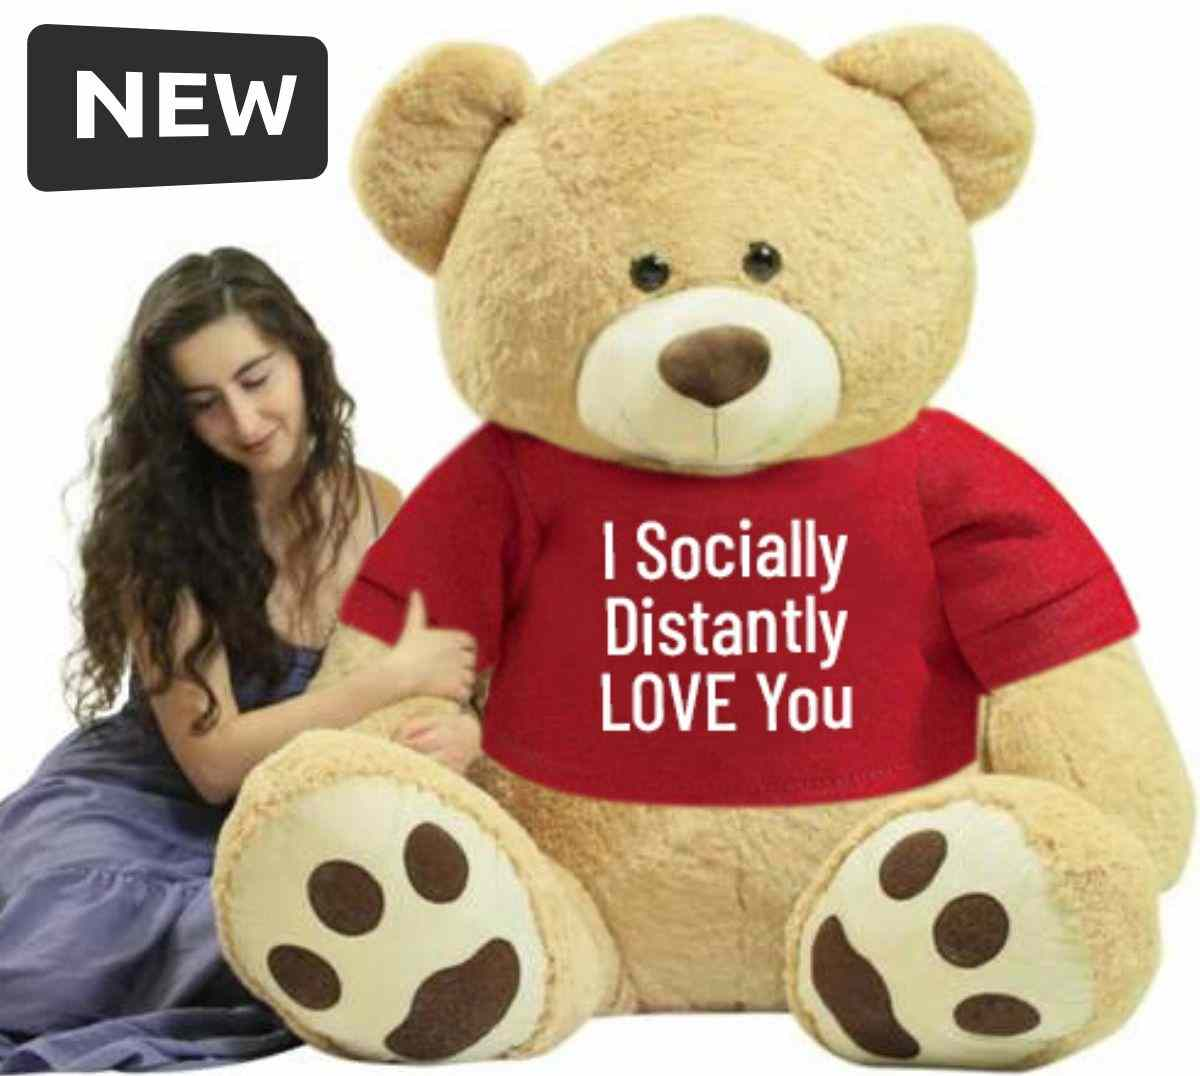 New Social Distancing Gifts Category at Big Plush giant stuffed animals